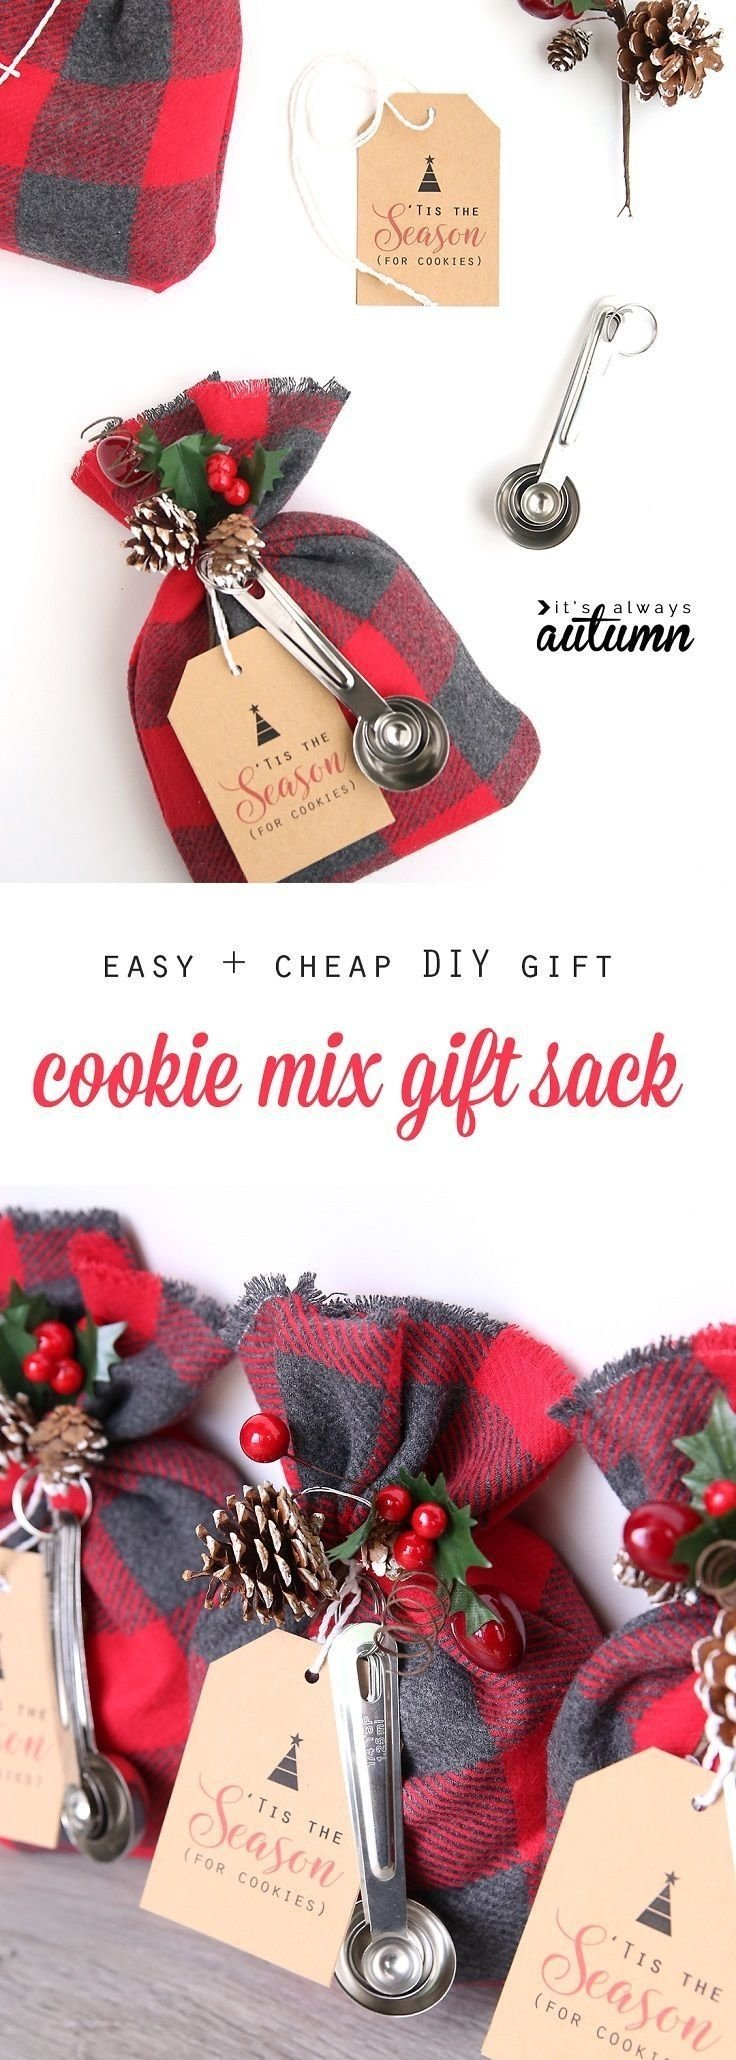 10 Fantastic Ideas For Christmas Gifts To Make 188 best christmas gifts party favors images on pinterest 2021